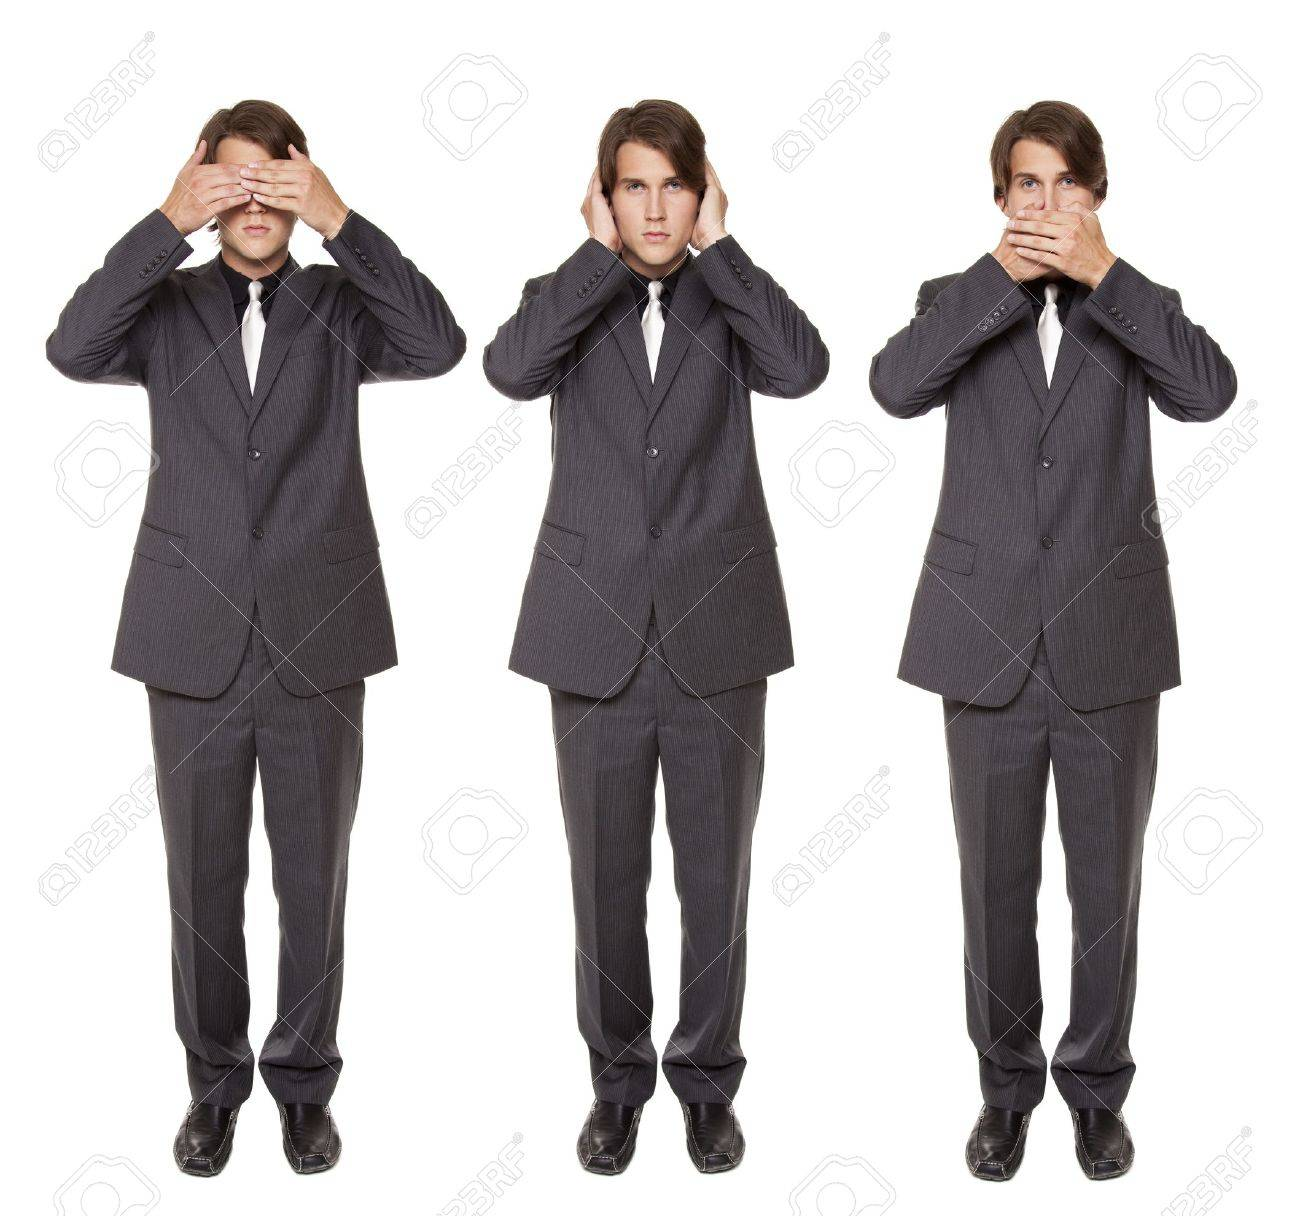 Isolated studio shot of a businessman in the See No Evil, Hear No Evil, Speak No Evil poses. Stock Photo - 8081950